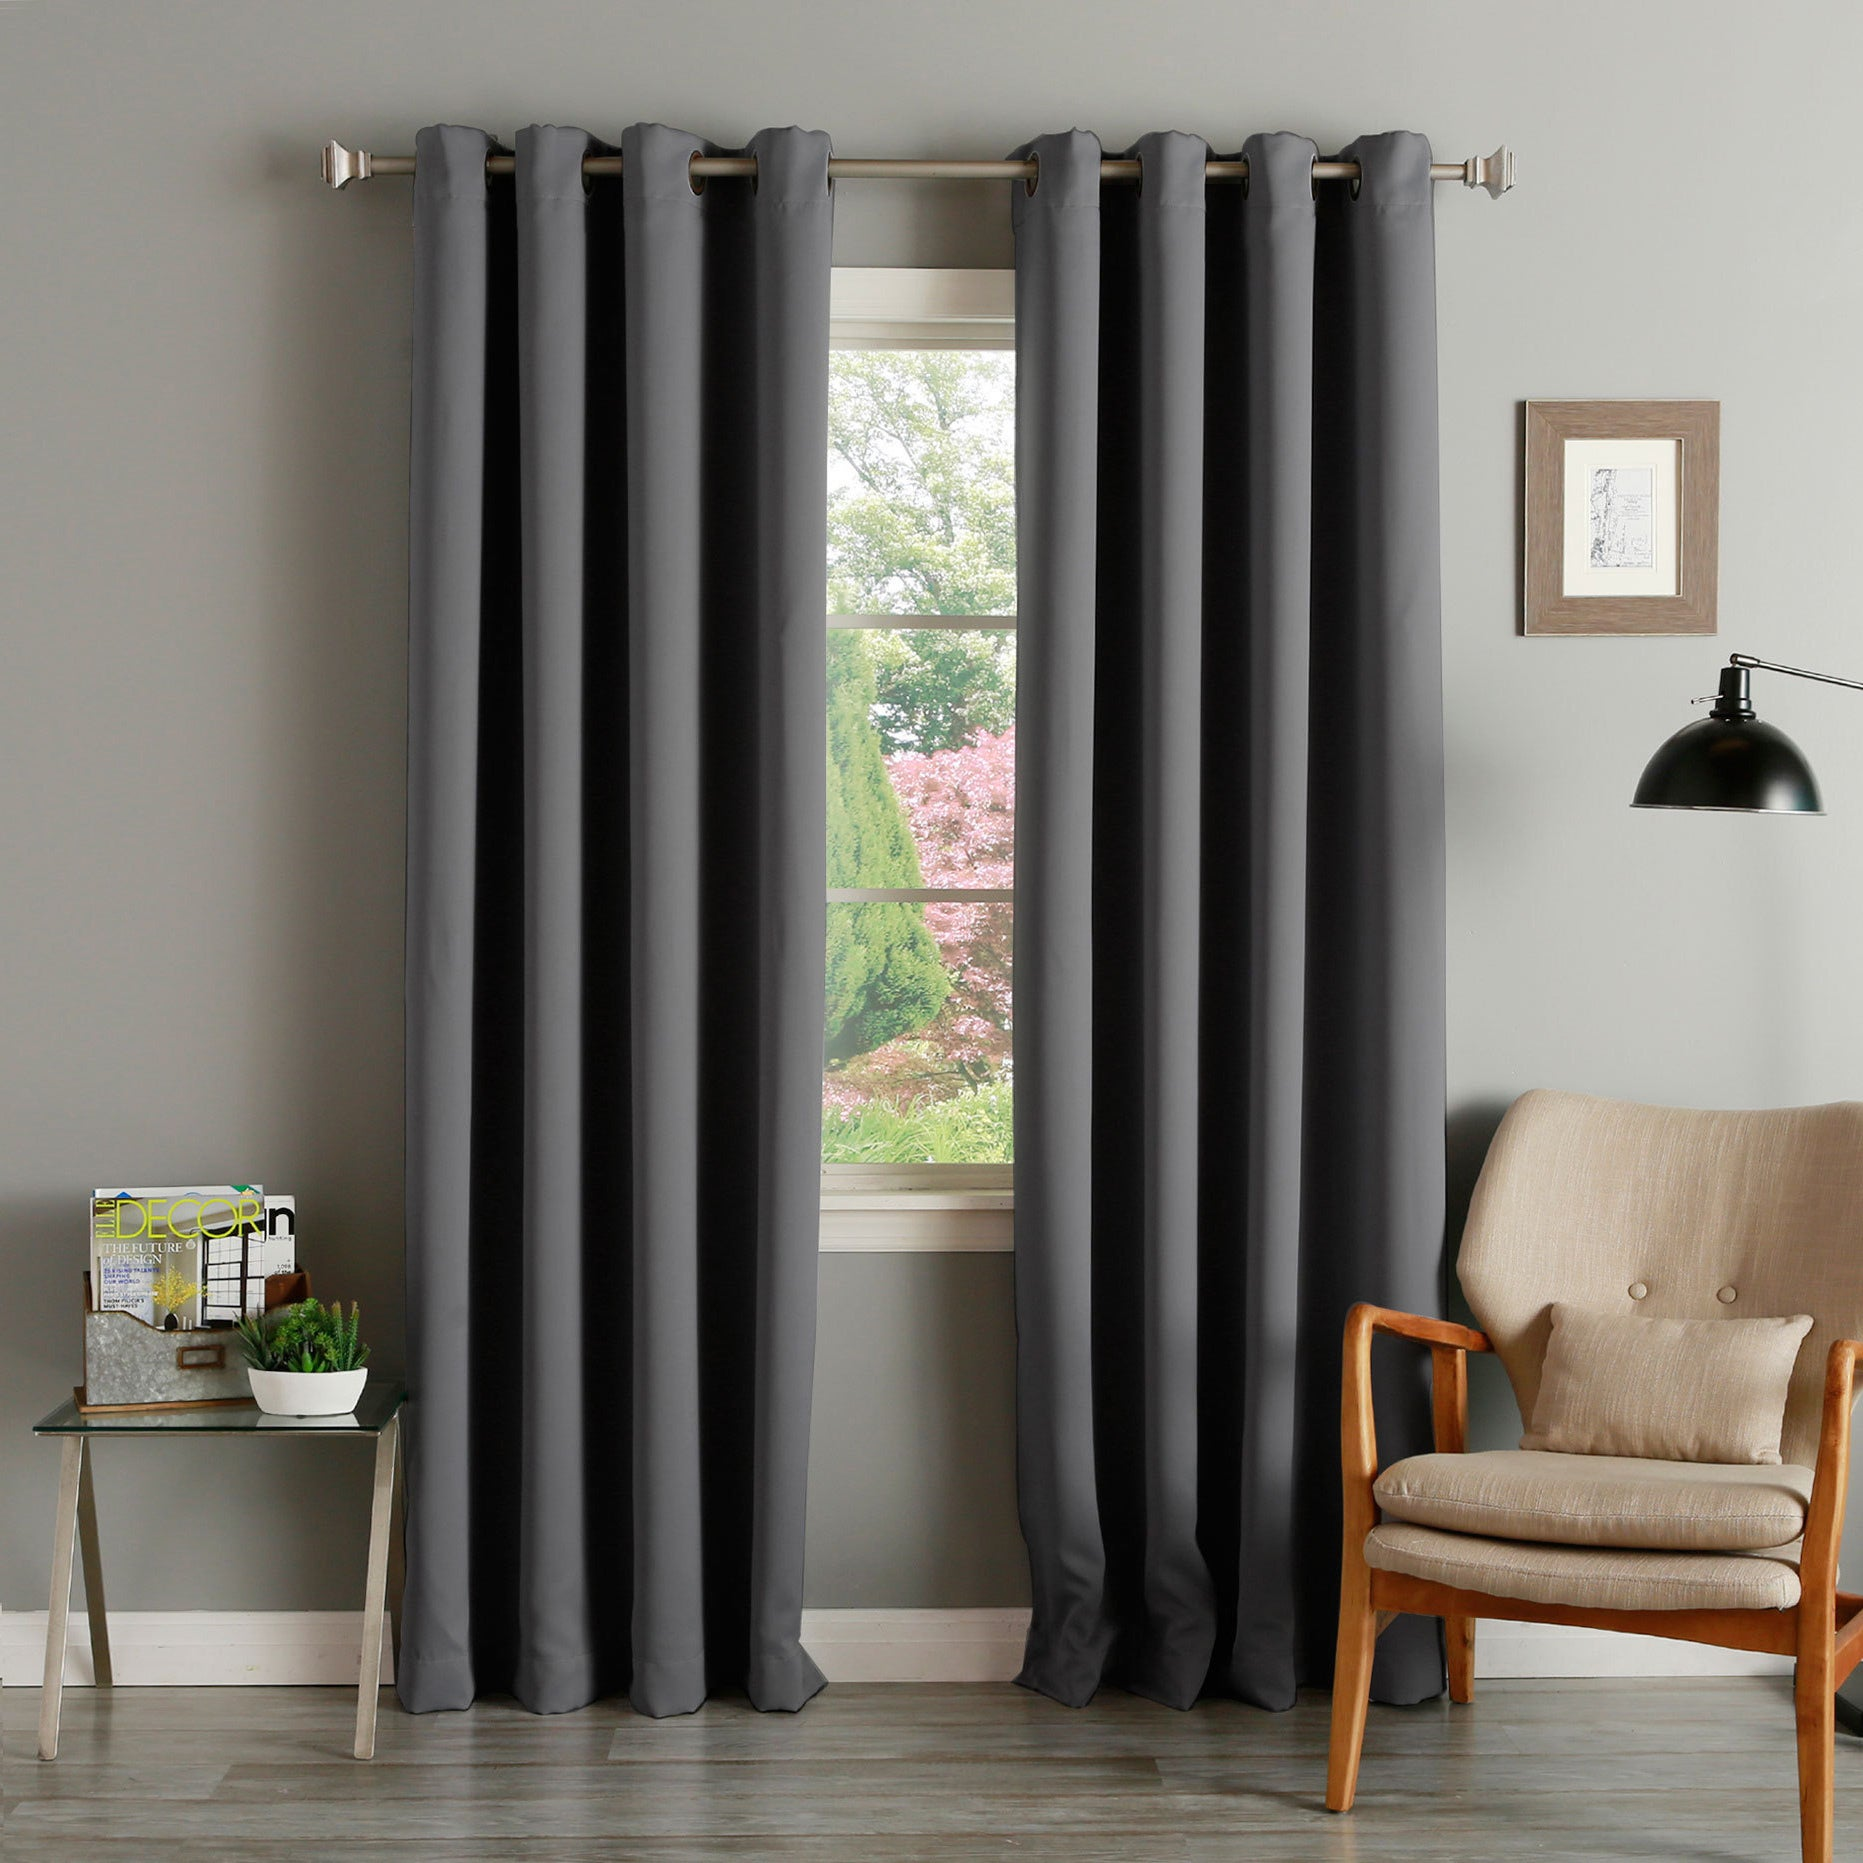 Do Blackout Curtains Keep Heat Out